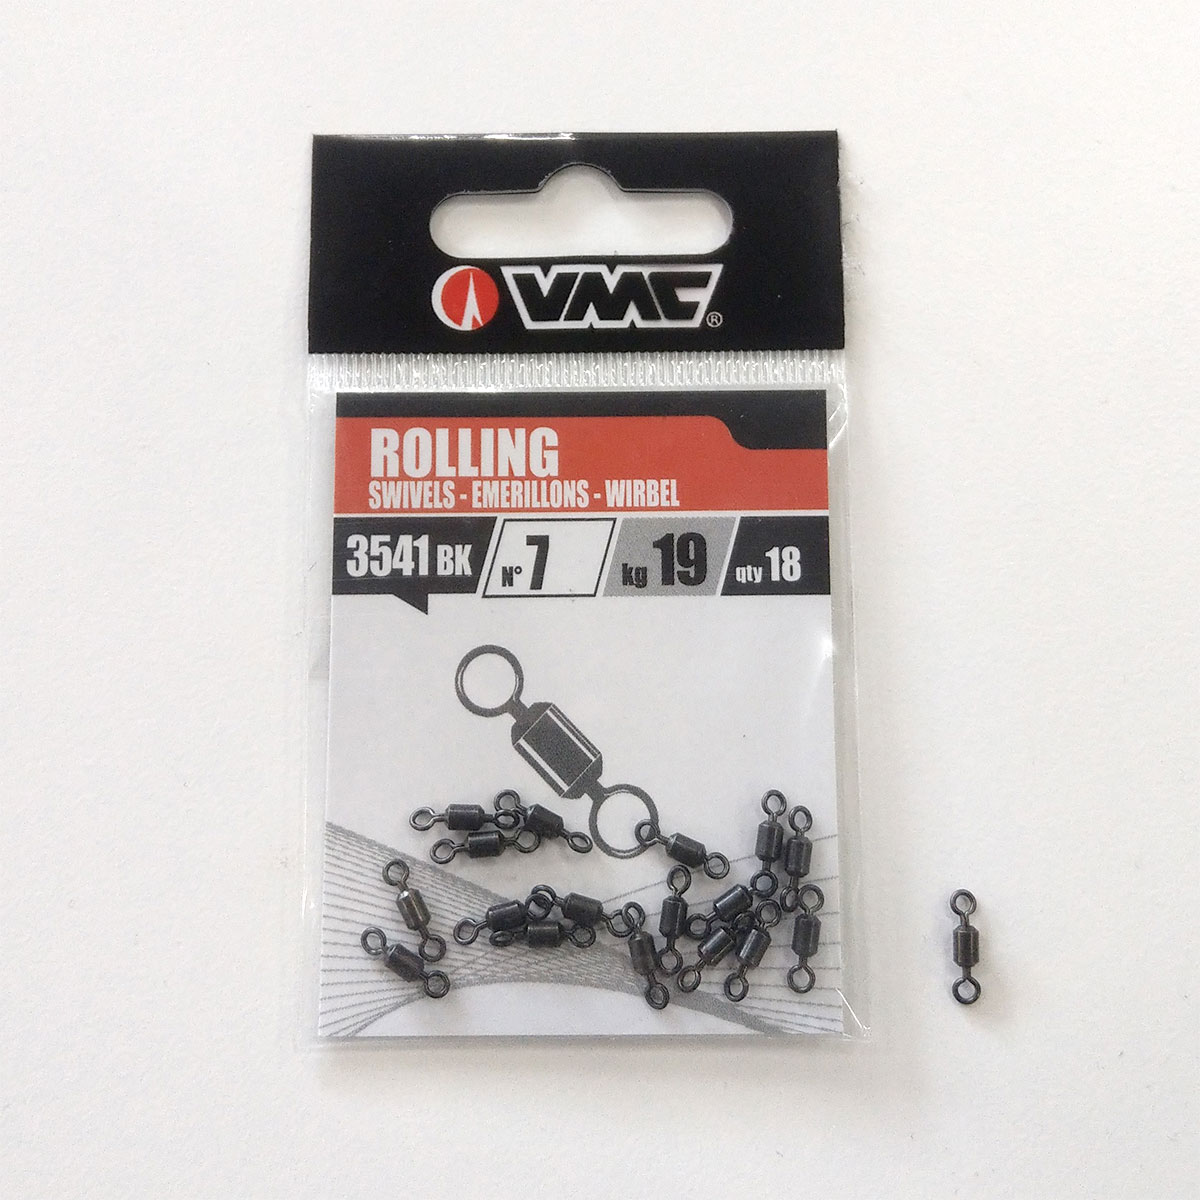 VMC rolling swivel